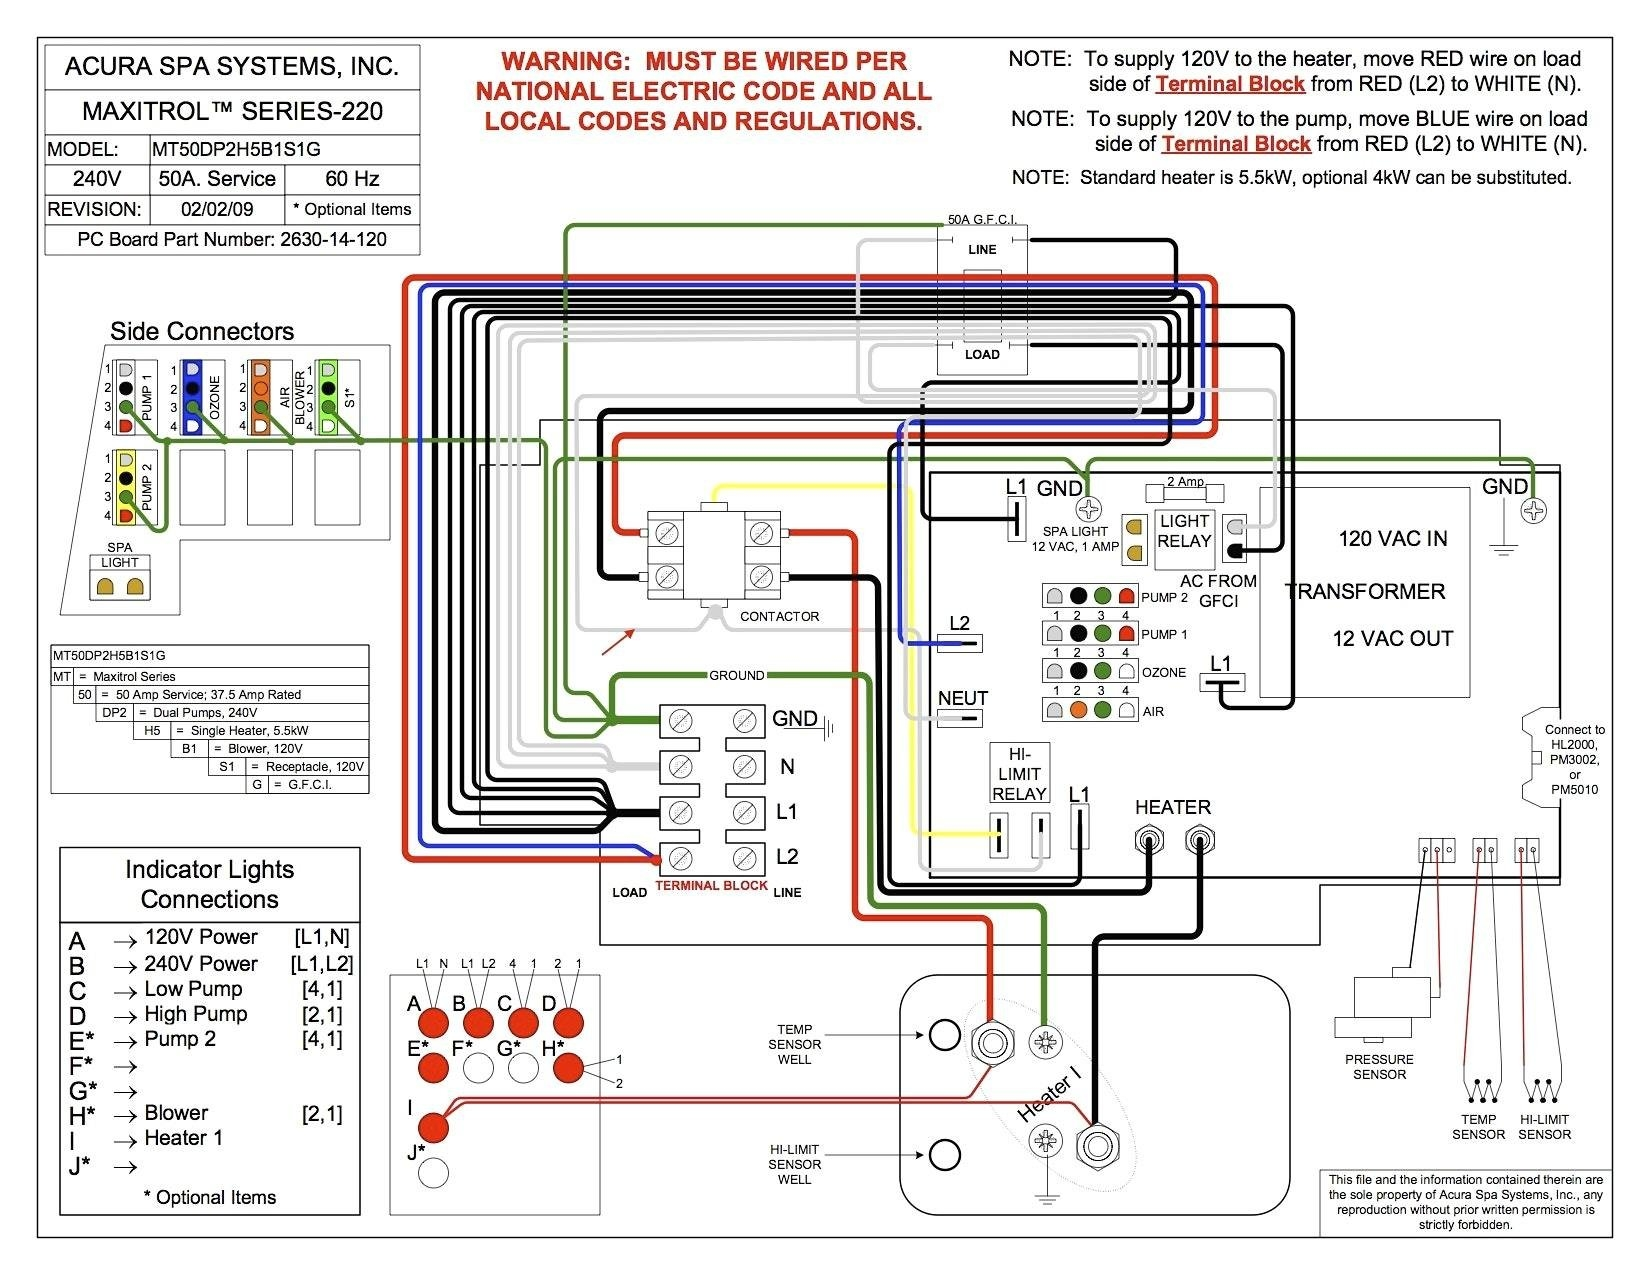 Hot Tub Wiring Diagram - Hot Spring Spa Wiring Diagram Luxury Wiring Diagram for Hot Tub Free Download Wiring Diagram 18q